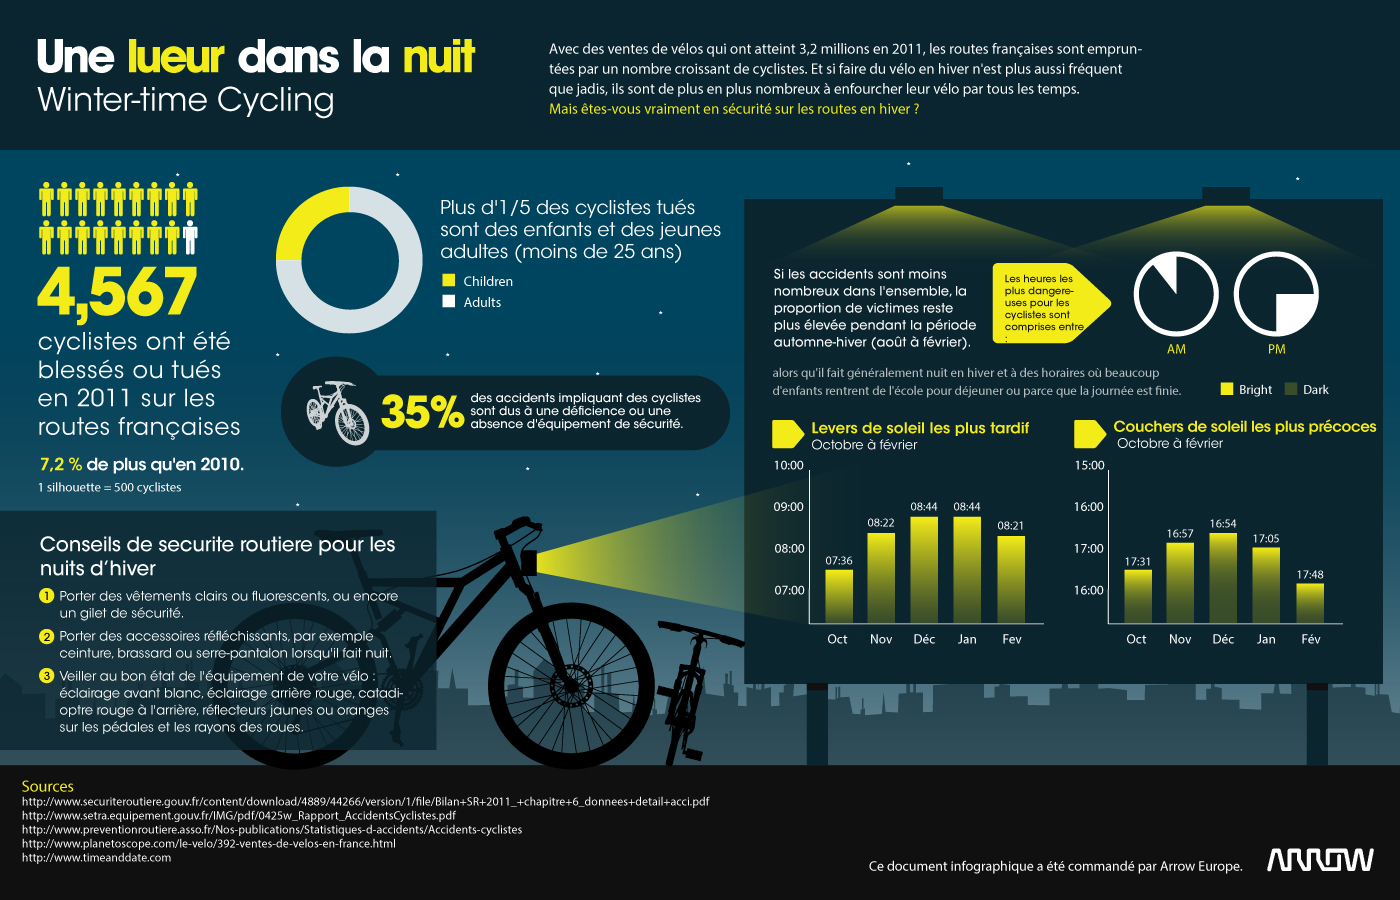 infographie sur les cyclistes en hiver et les accidents. Black Bedroom Furniture Sets. Home Design Ideas